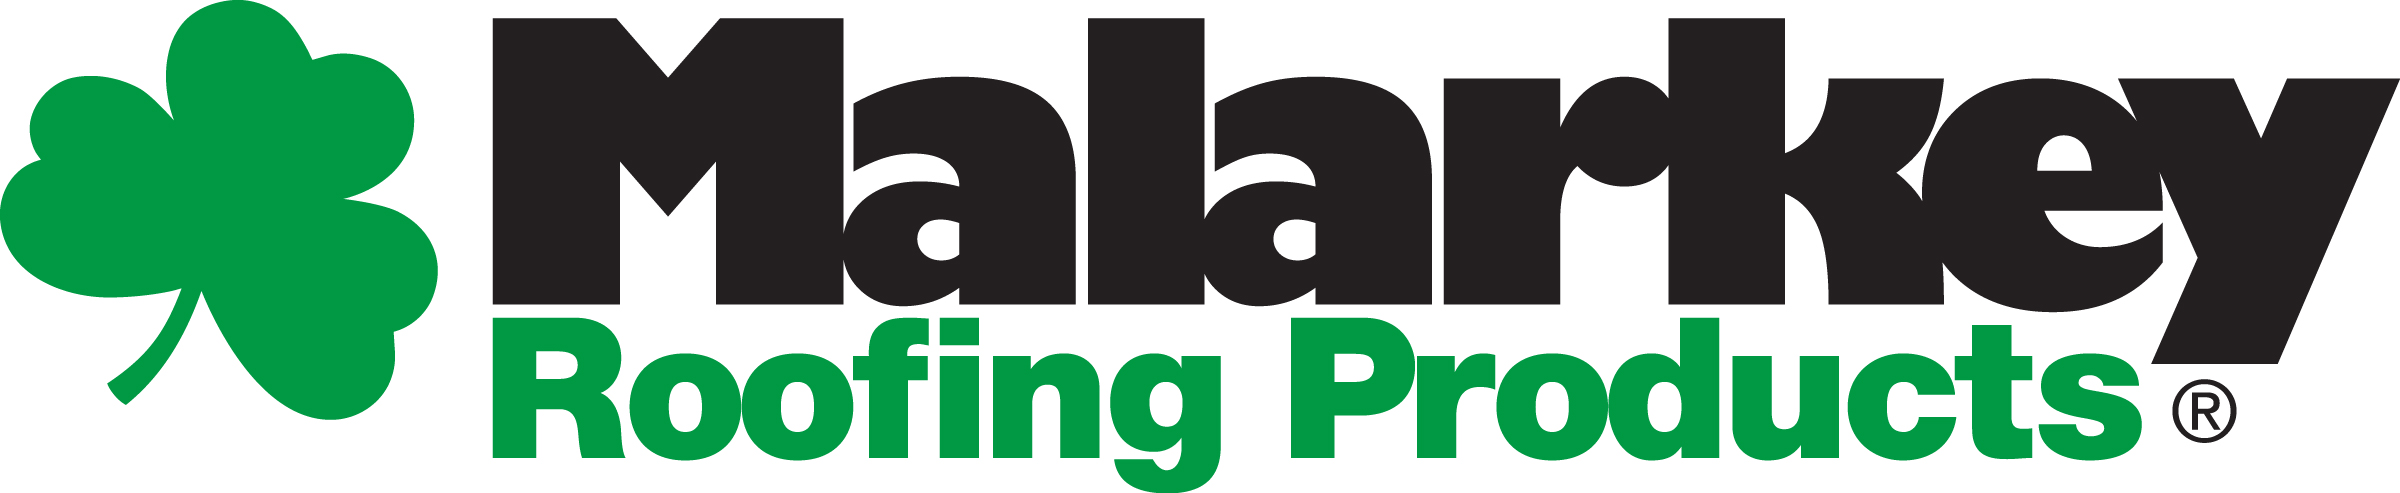 Incentive Solutions Partners With Malarkey Roofing Products® To Increase  Brand Loyalty Within Sales Channel